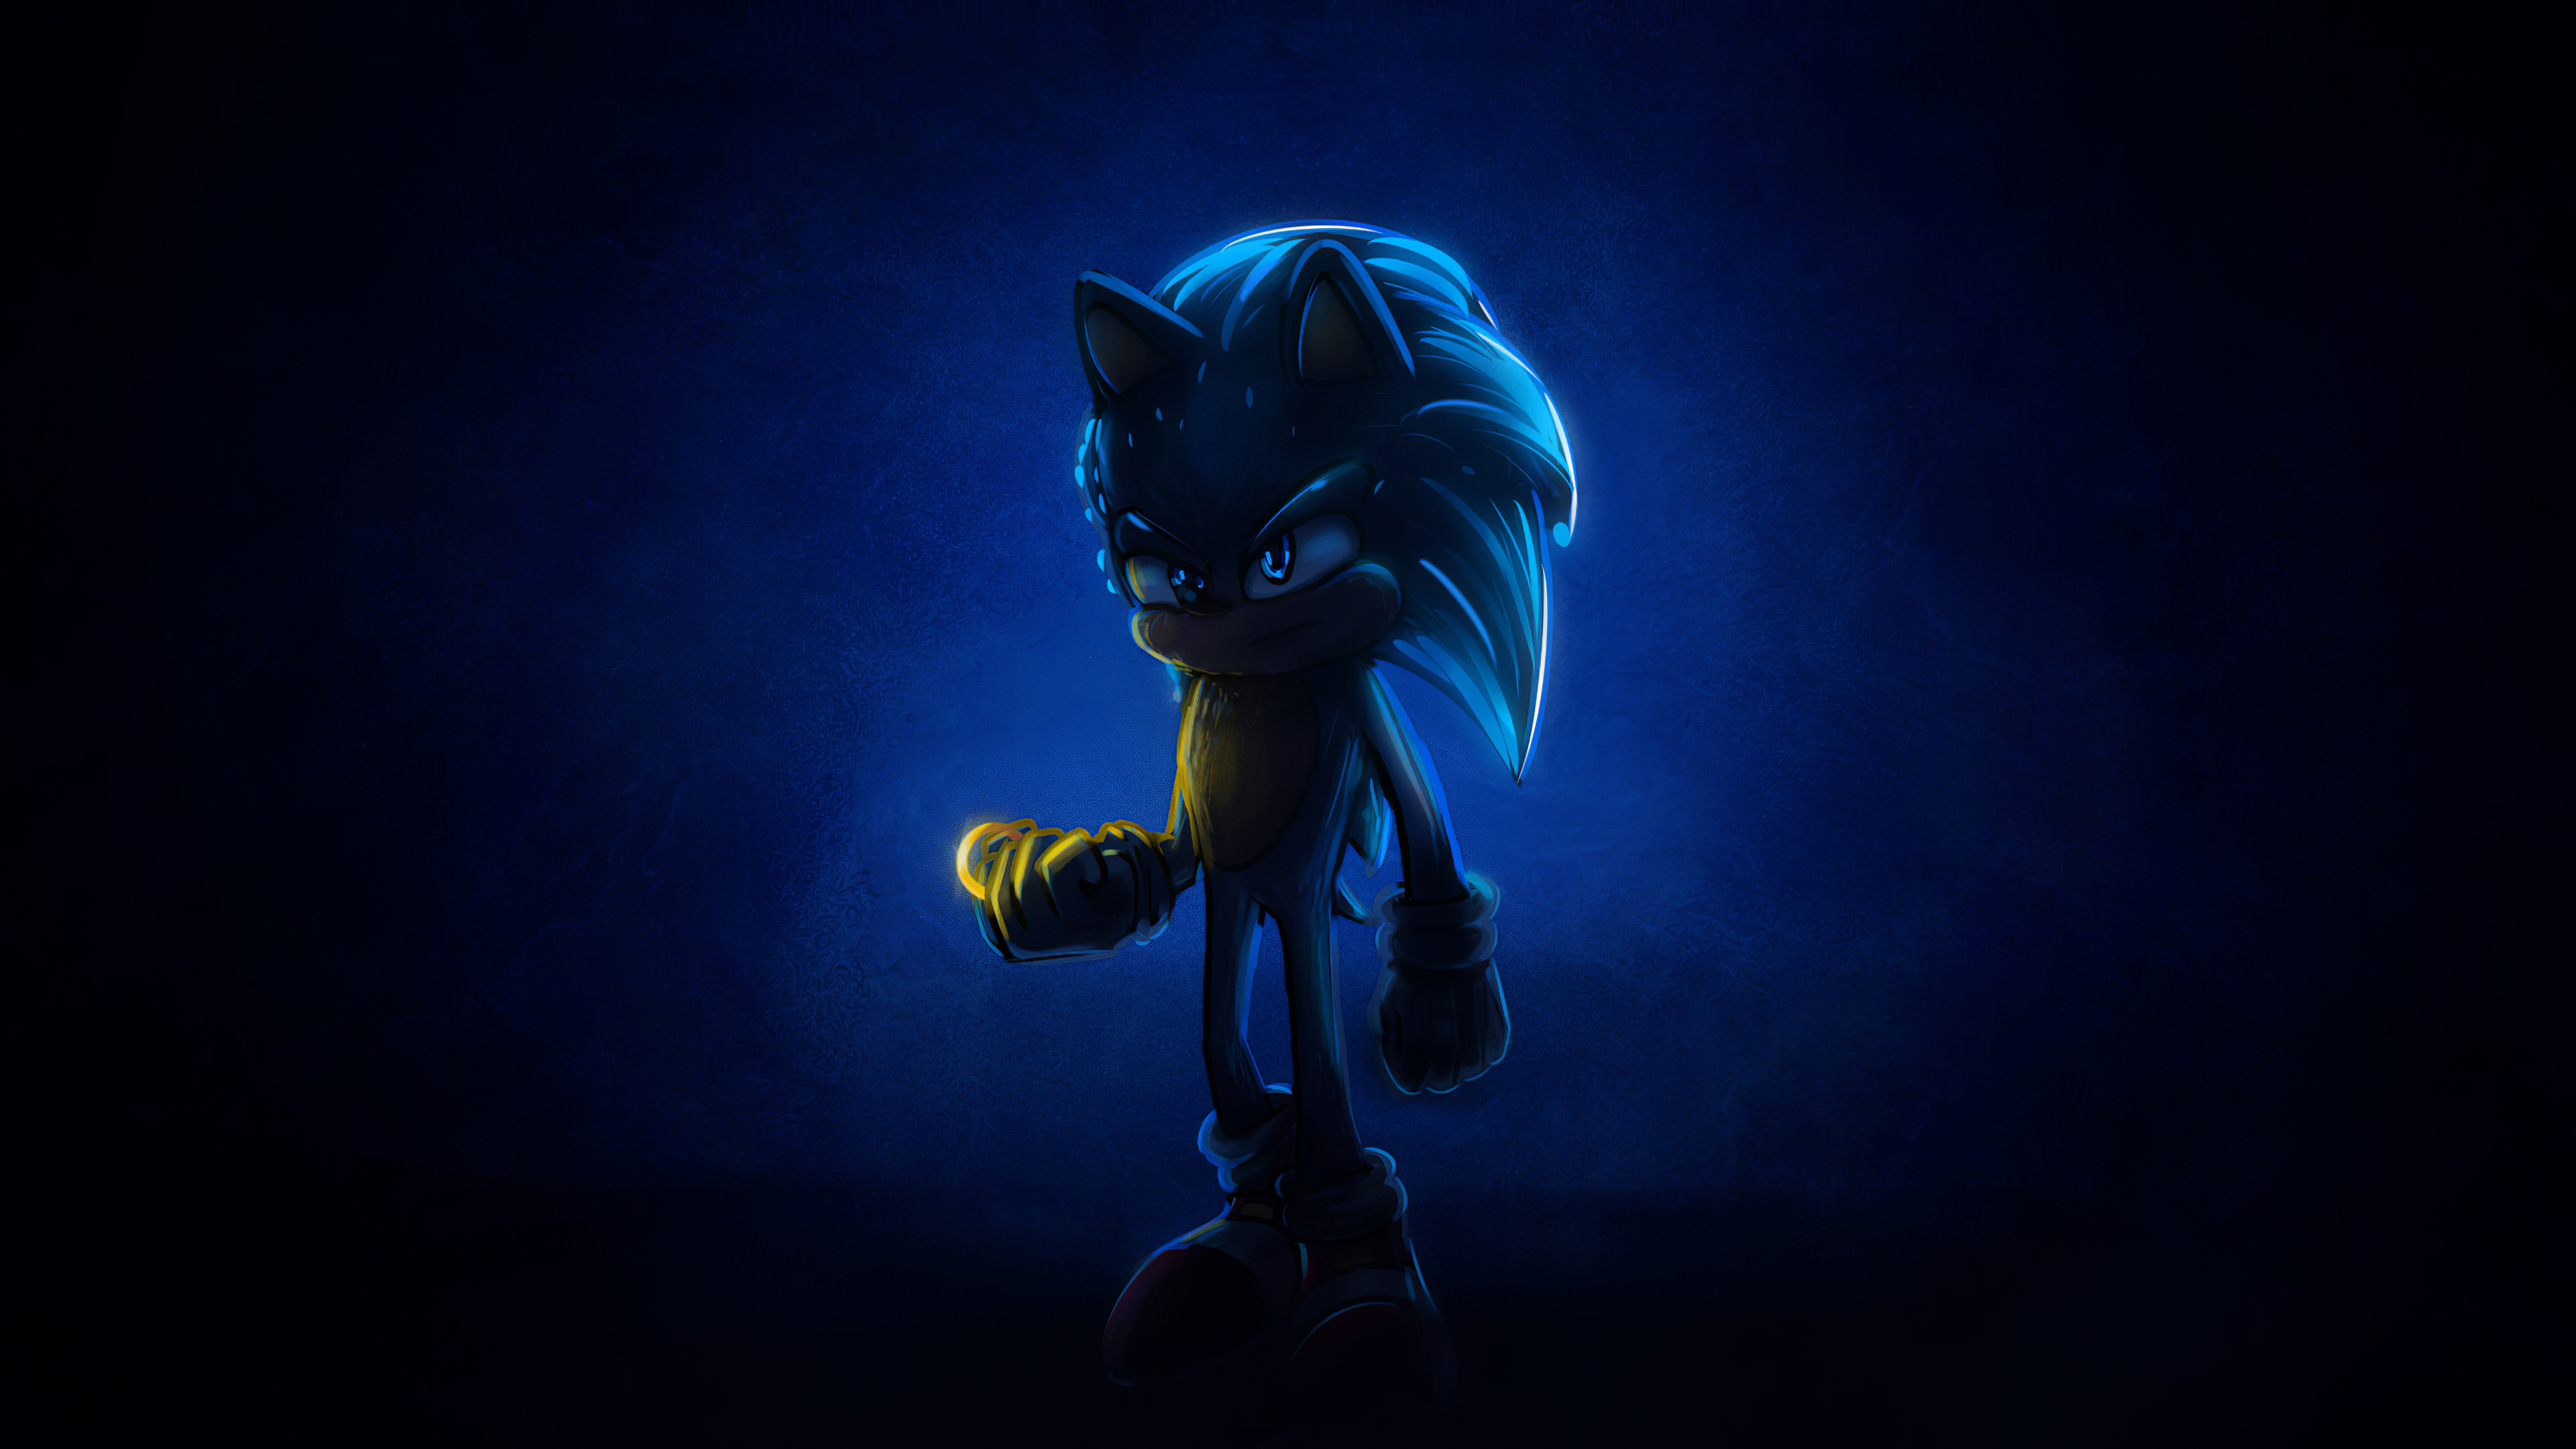 Sonic 2020 4k Artwork Wallpaper Hd Movies 4k Wallpapers Images Photos And Background